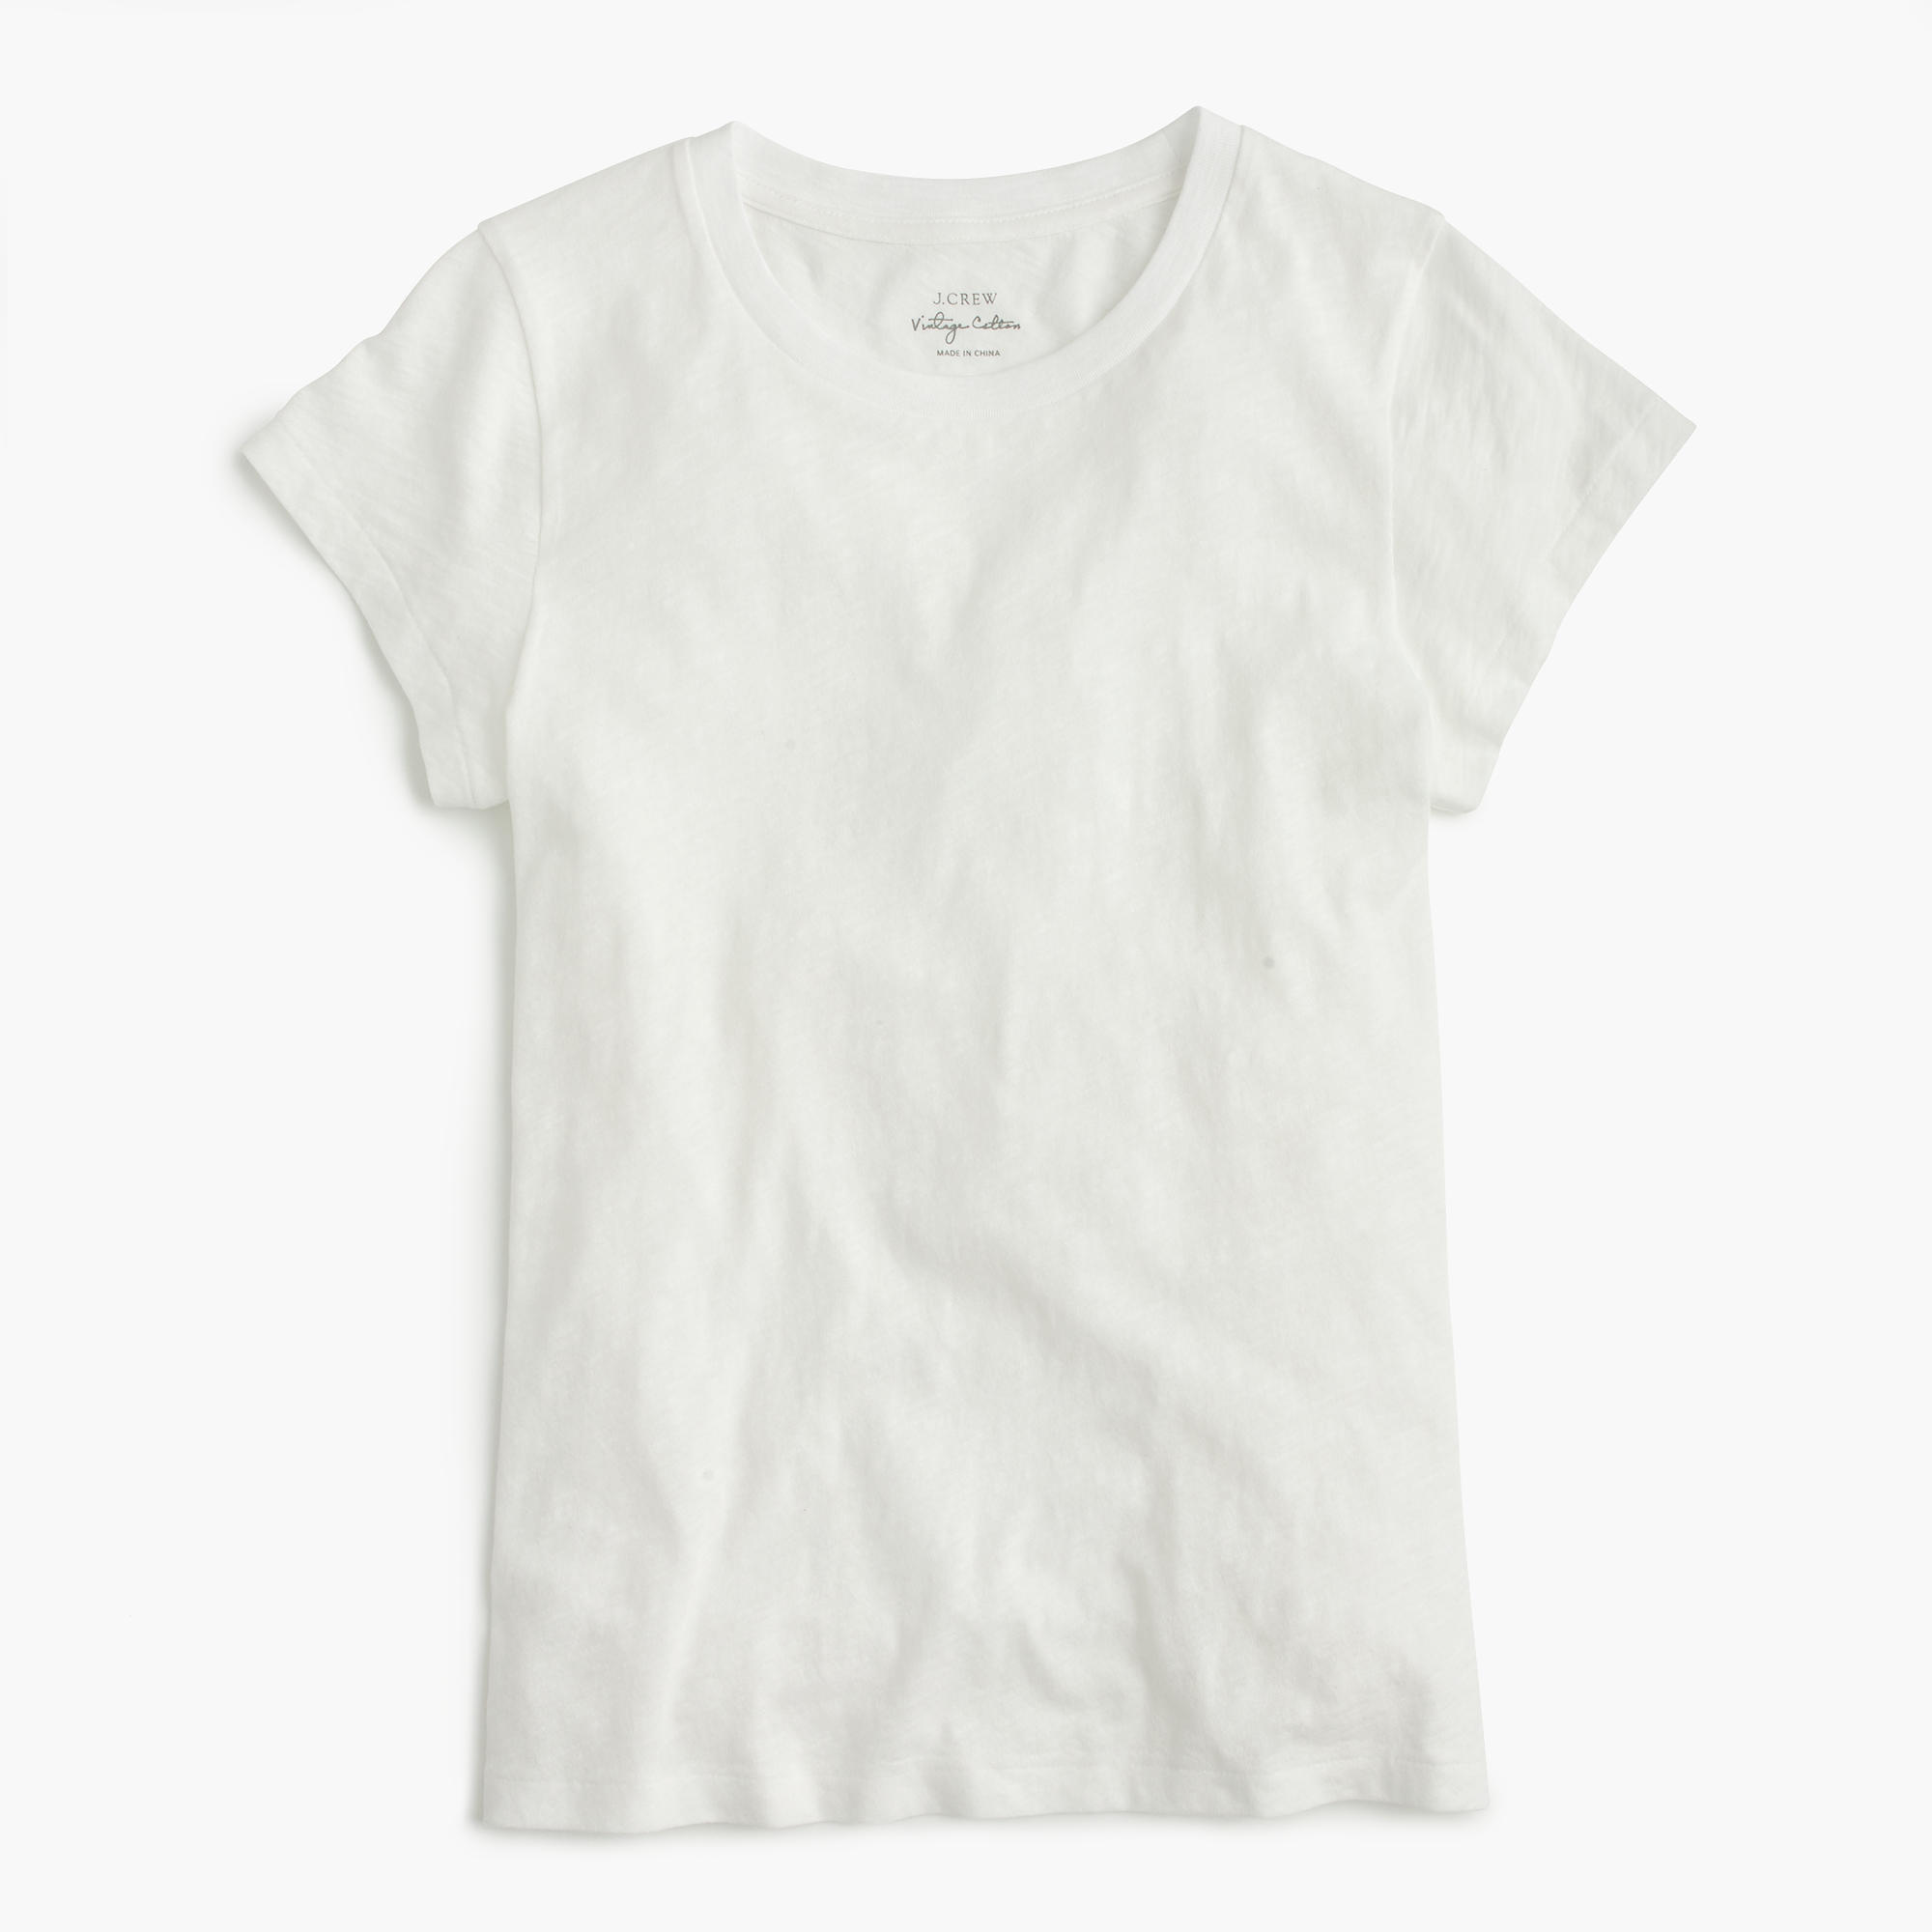 J. Crew tee—15 wardrobe classics for $150 and under